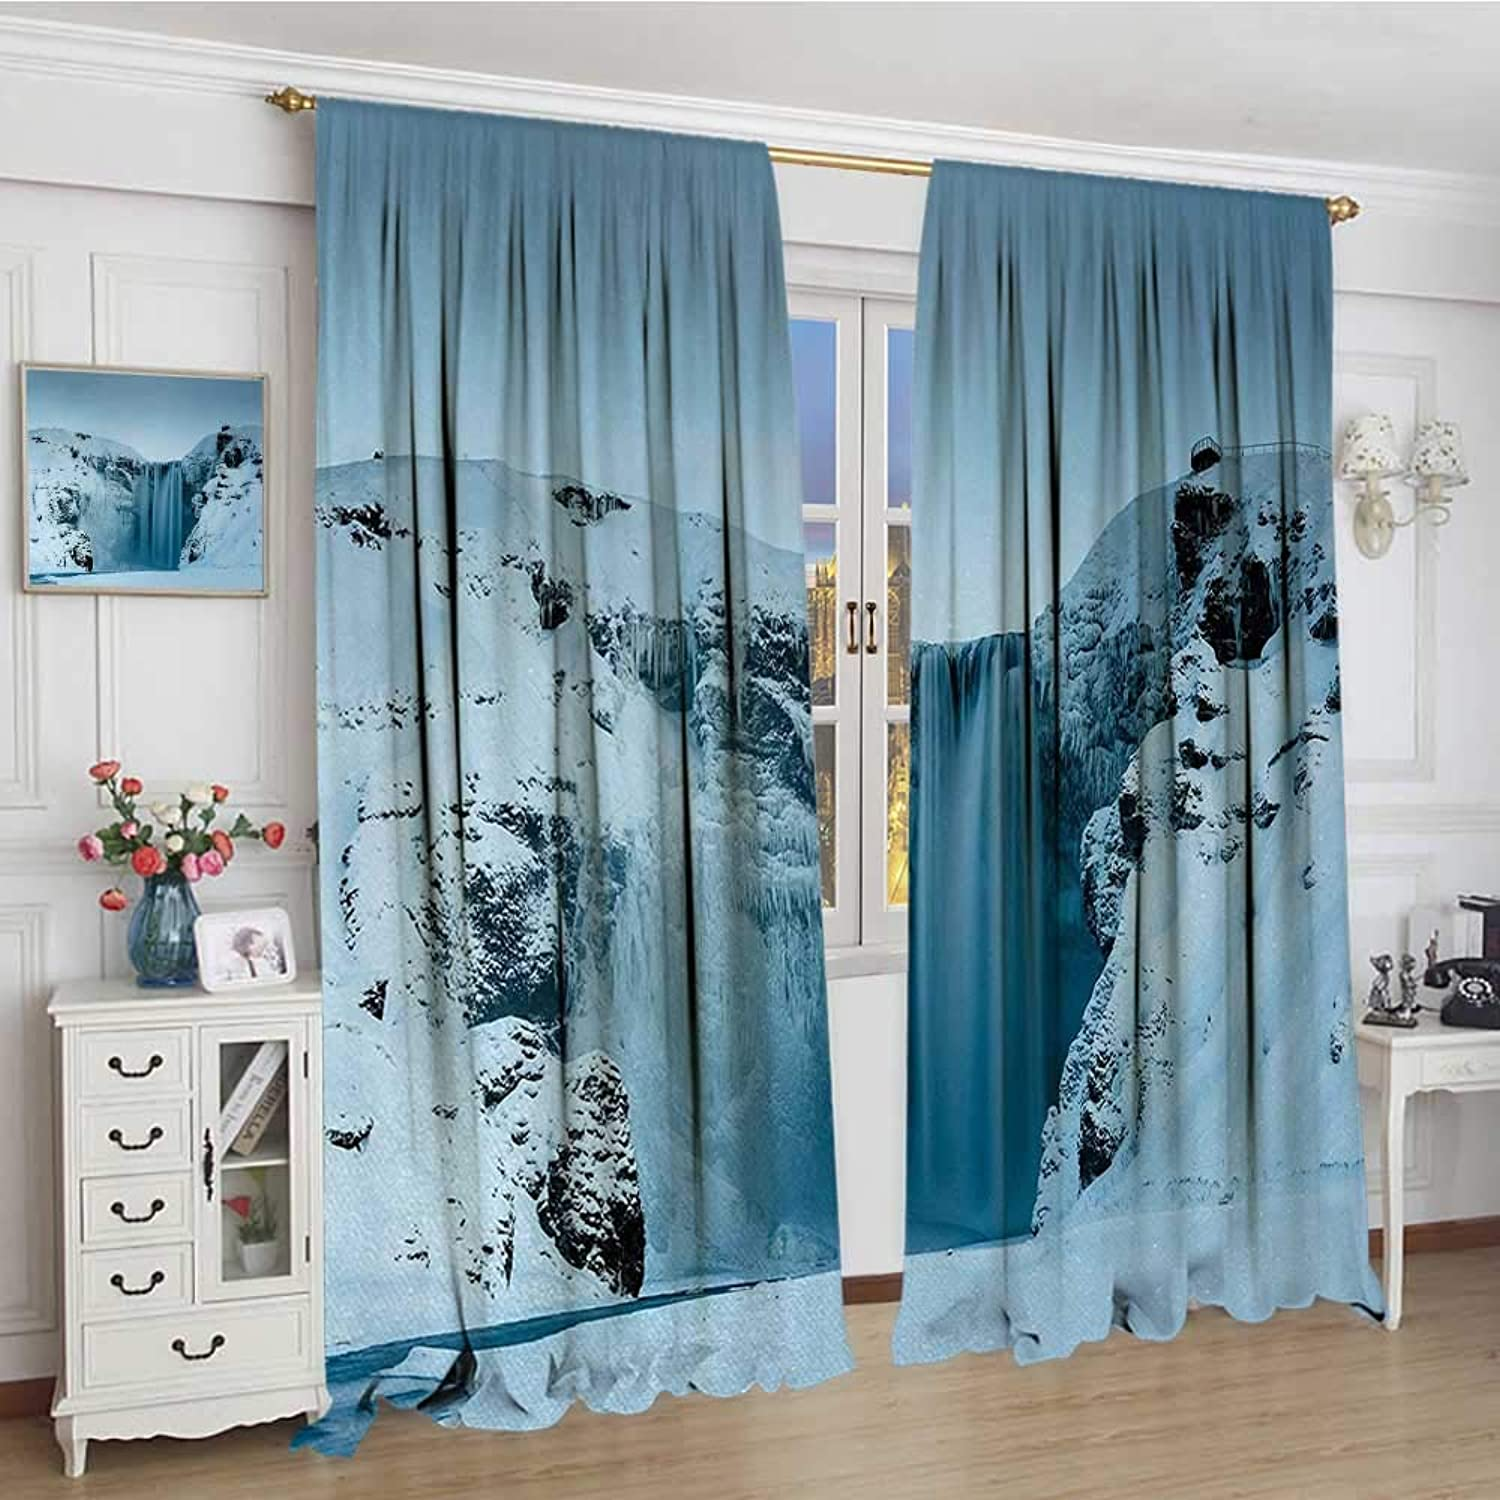 Waterfall Thermal Insulating Blackout Curtain Frozen Waterfall Heavenly Landscape View with Mountains Covered with Snow Art Decorative Curtains for Living Room 96 x96  Petrol bluee